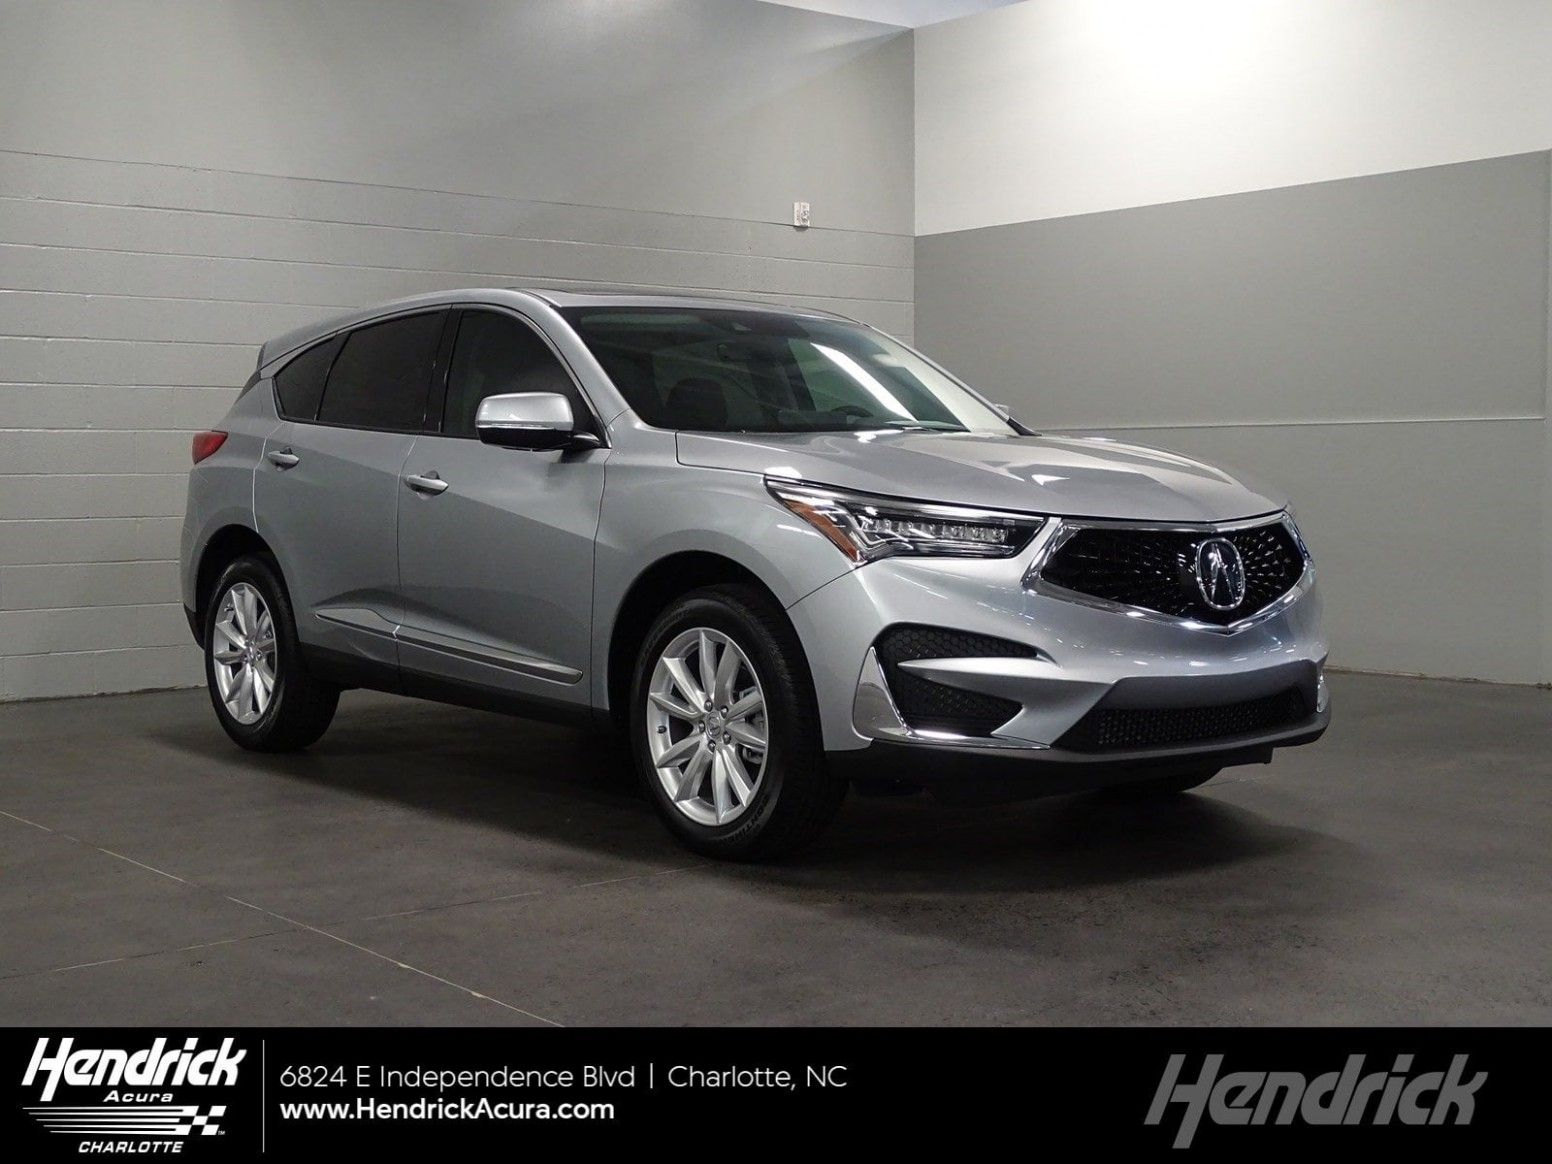 The Acura Rdx Was Absolutely Redesigned From The Arena Up In 2019 And Burst All Expectations It Gave Off That Wow Agency That Every Acura Nsx Acura Rdx Car Wallpapers